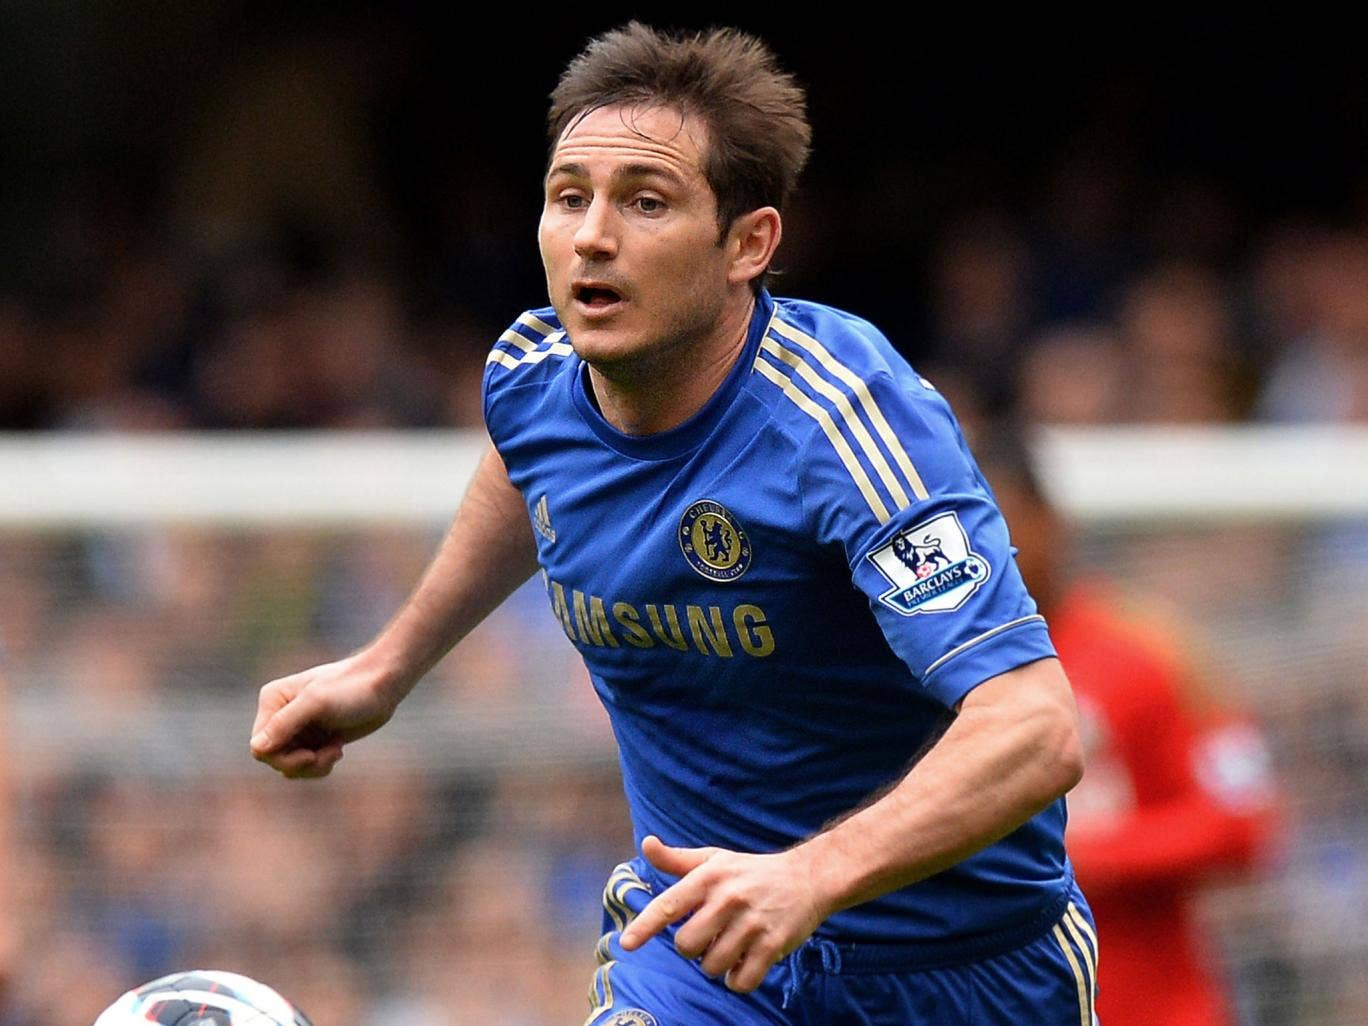 Frank Lampard said that the return of Jose Mourinho would transform Chelsea again